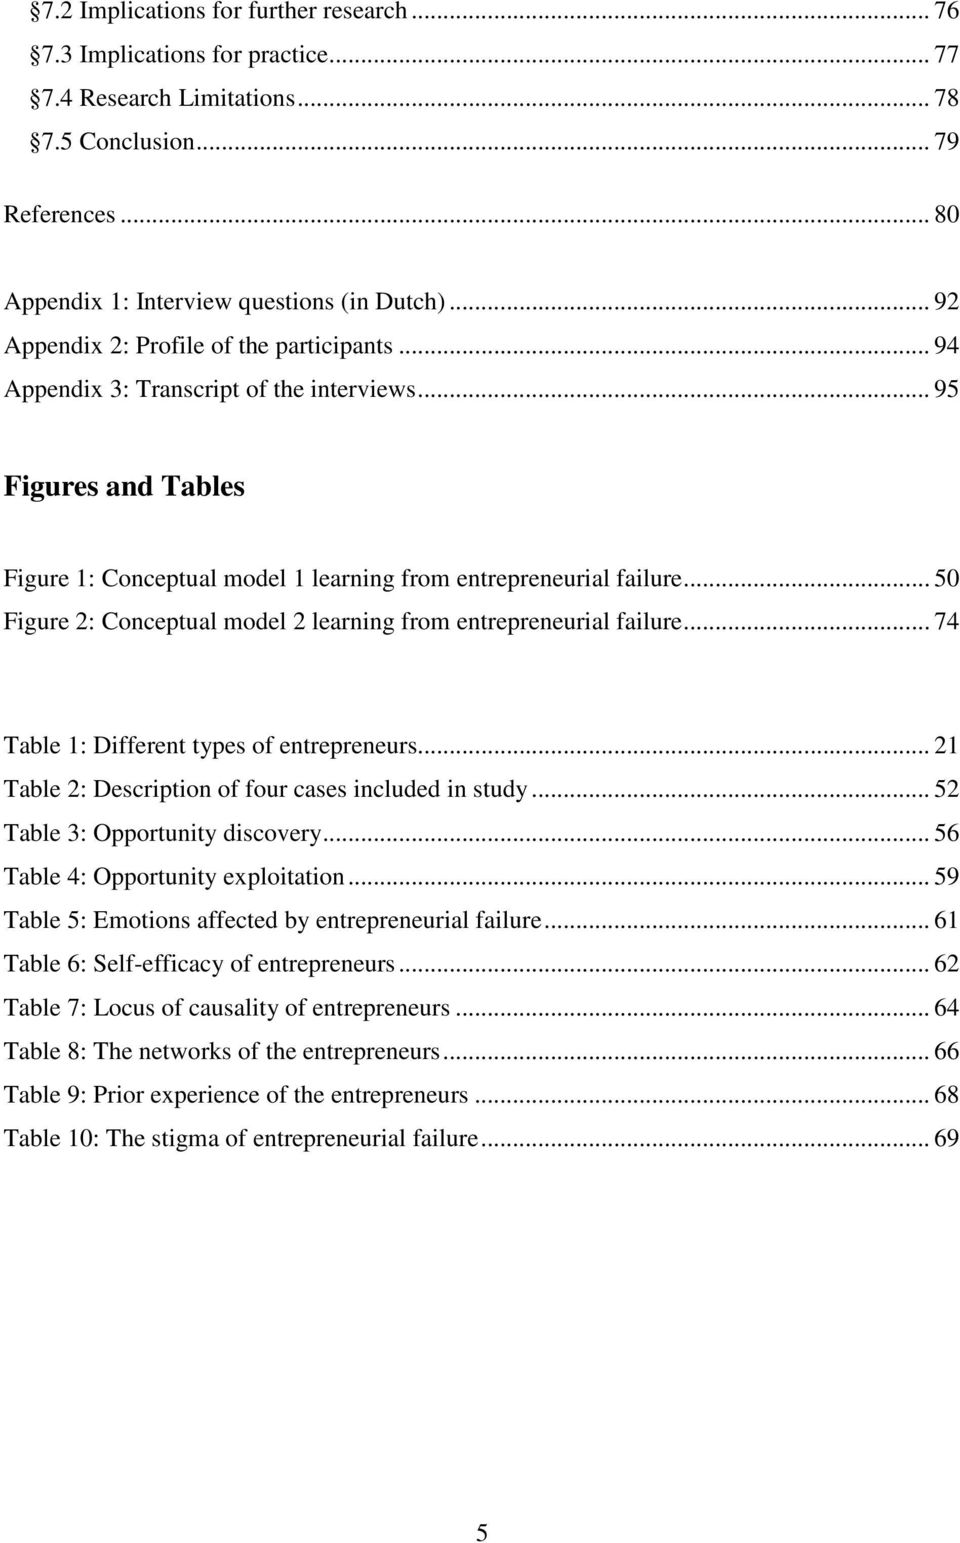 .. 50 Figure 2: Conceptual model 2 learning from entrepreneurial failure... 74 Table 1: Different types of entrepreneurs... 21 Table 2: Description of four cases included in study.